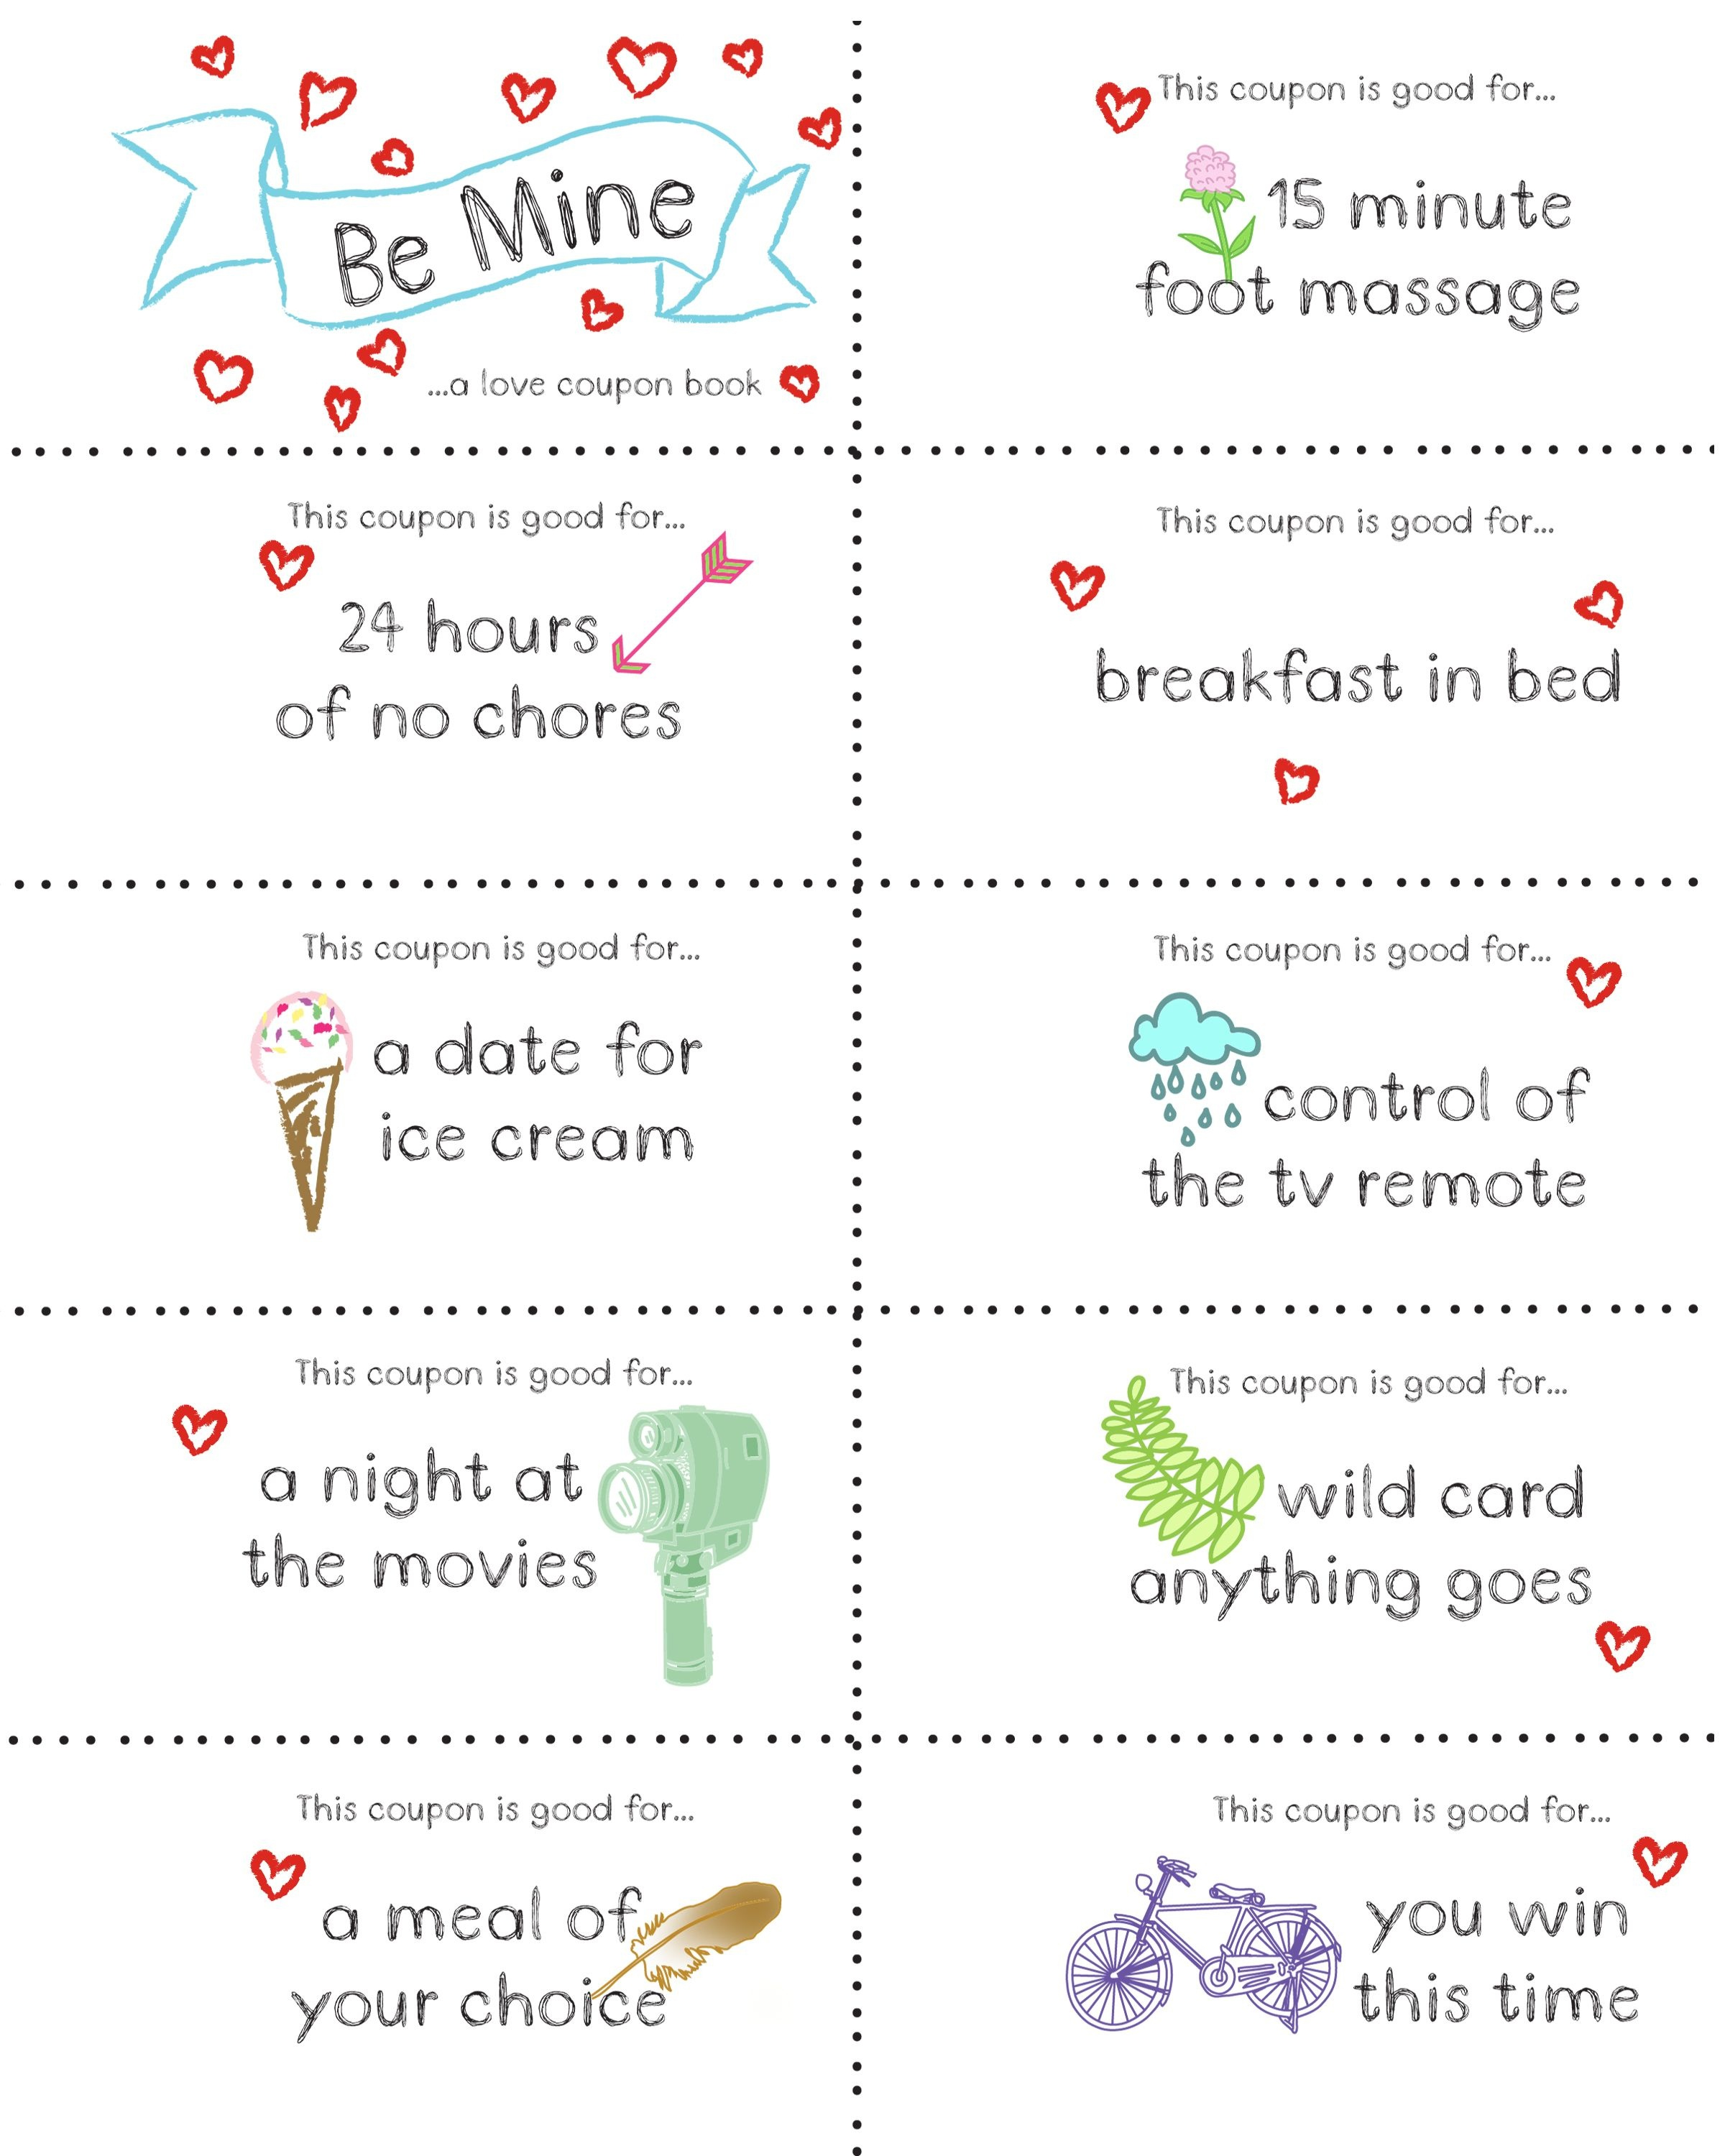 Last Minute Valentine Free Coupon Book Printable | Seasonal | Diy - Free Printable Homemade Coupon Book